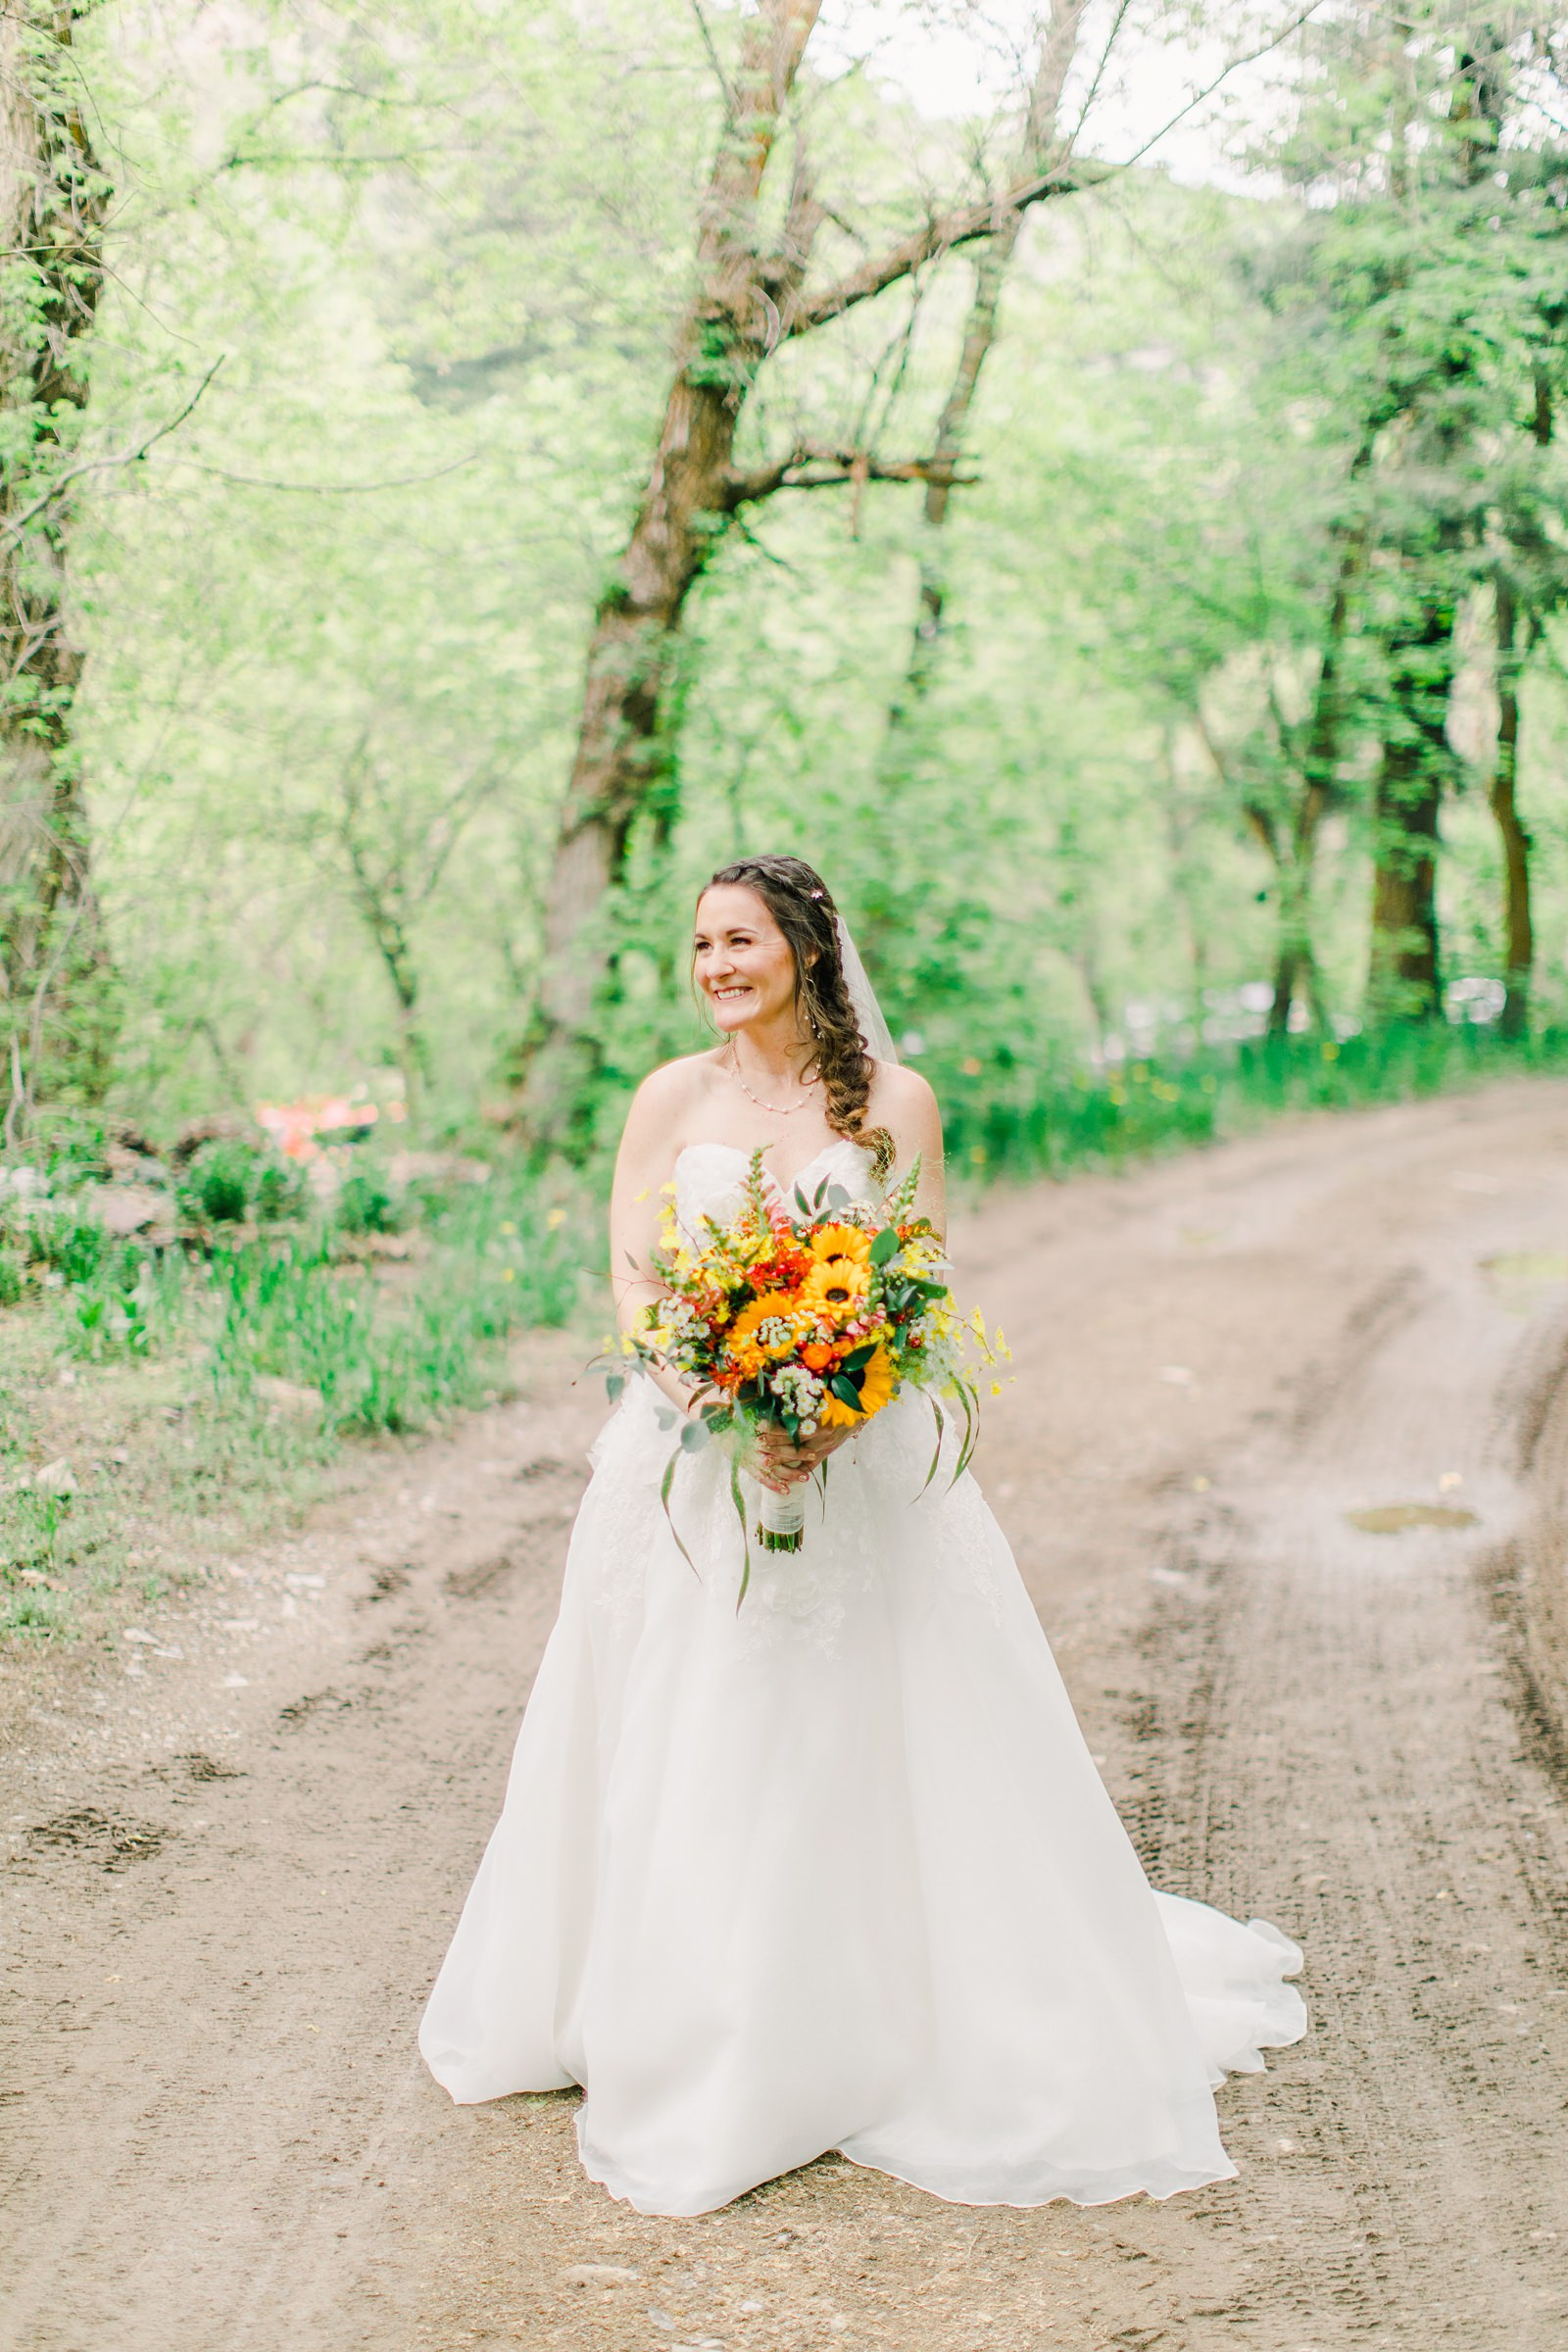 Millcreek Inn Summer Wedding, Utah wedding photography Millcreek Canyon, Salt Lake City, bride tulle ballgown with floral embellishments, sunflower yellow and orange bouquet wedding flowers